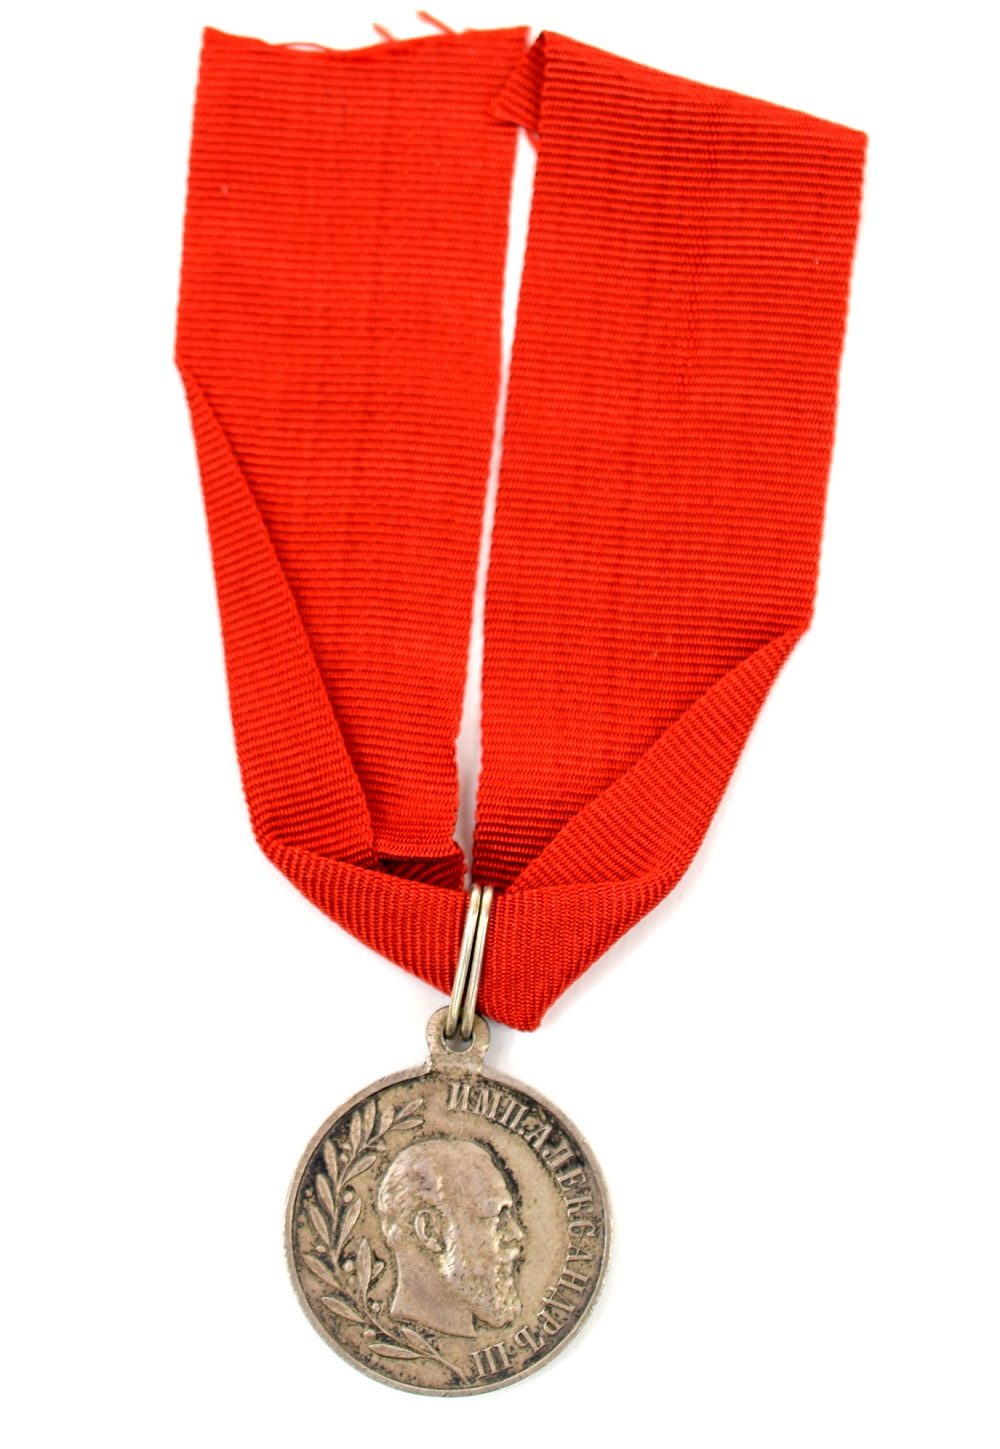 Medal for the Long Service under the Reign of Alexander III